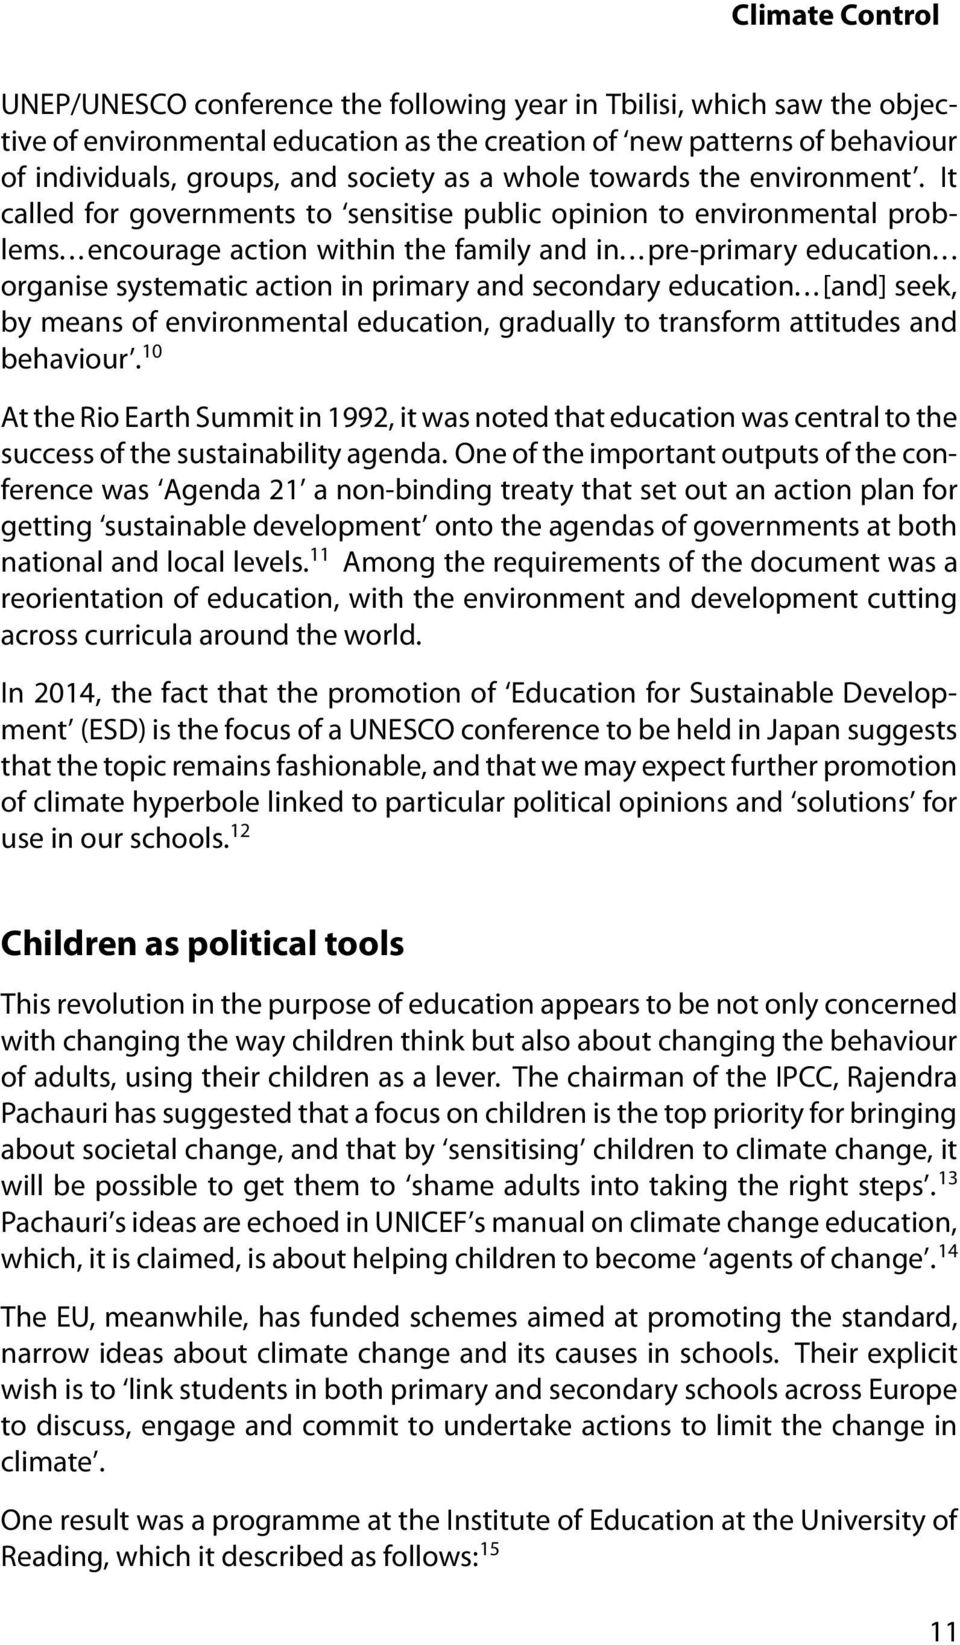 .. organise systematic action in primary and secondary education...[and] seek, by means of environmental education, gradually to transform attitudes and behaviour.